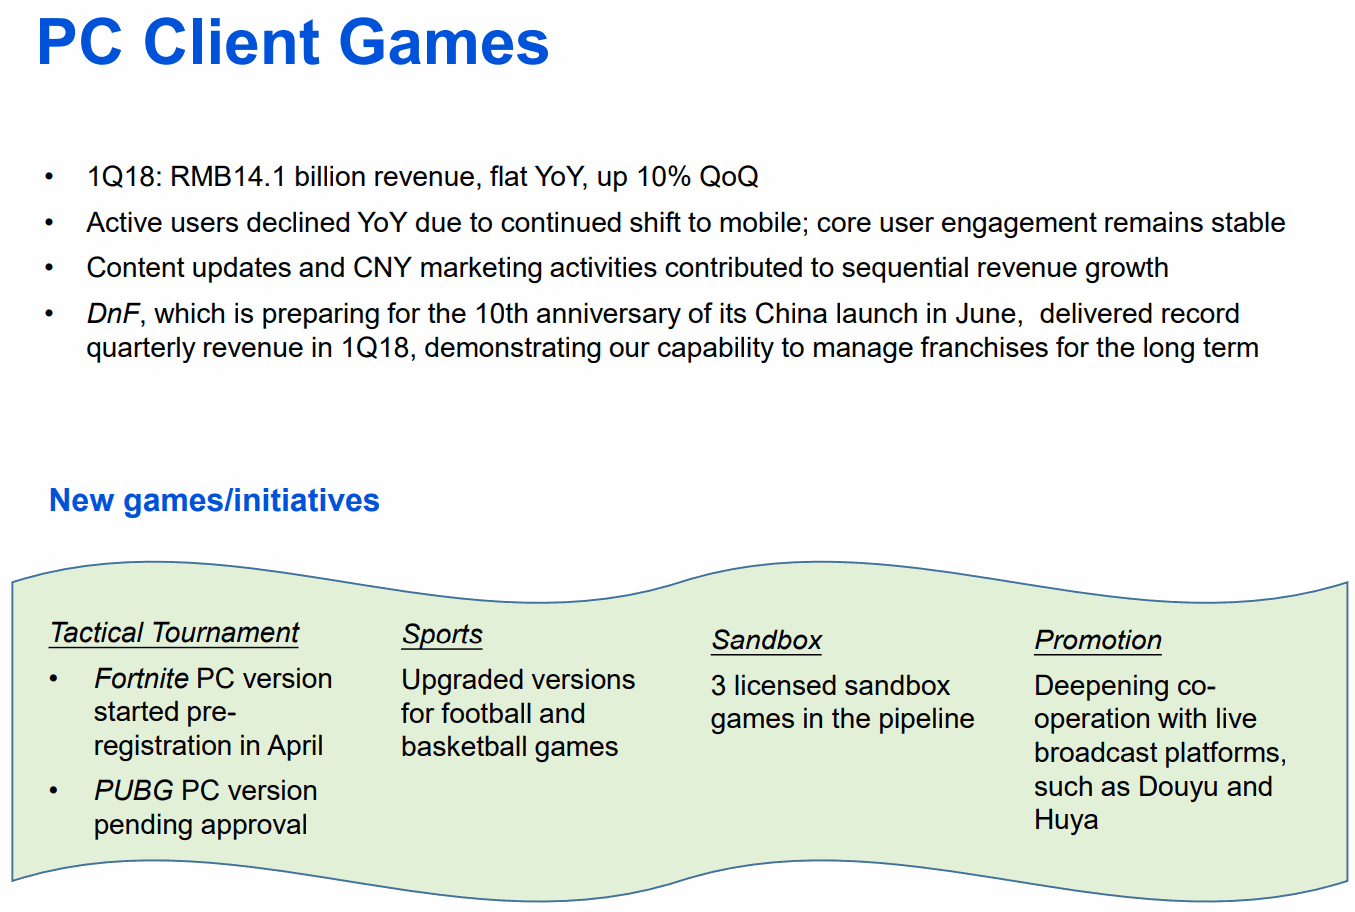 Tencent-2018Q1-PC-Client-Games